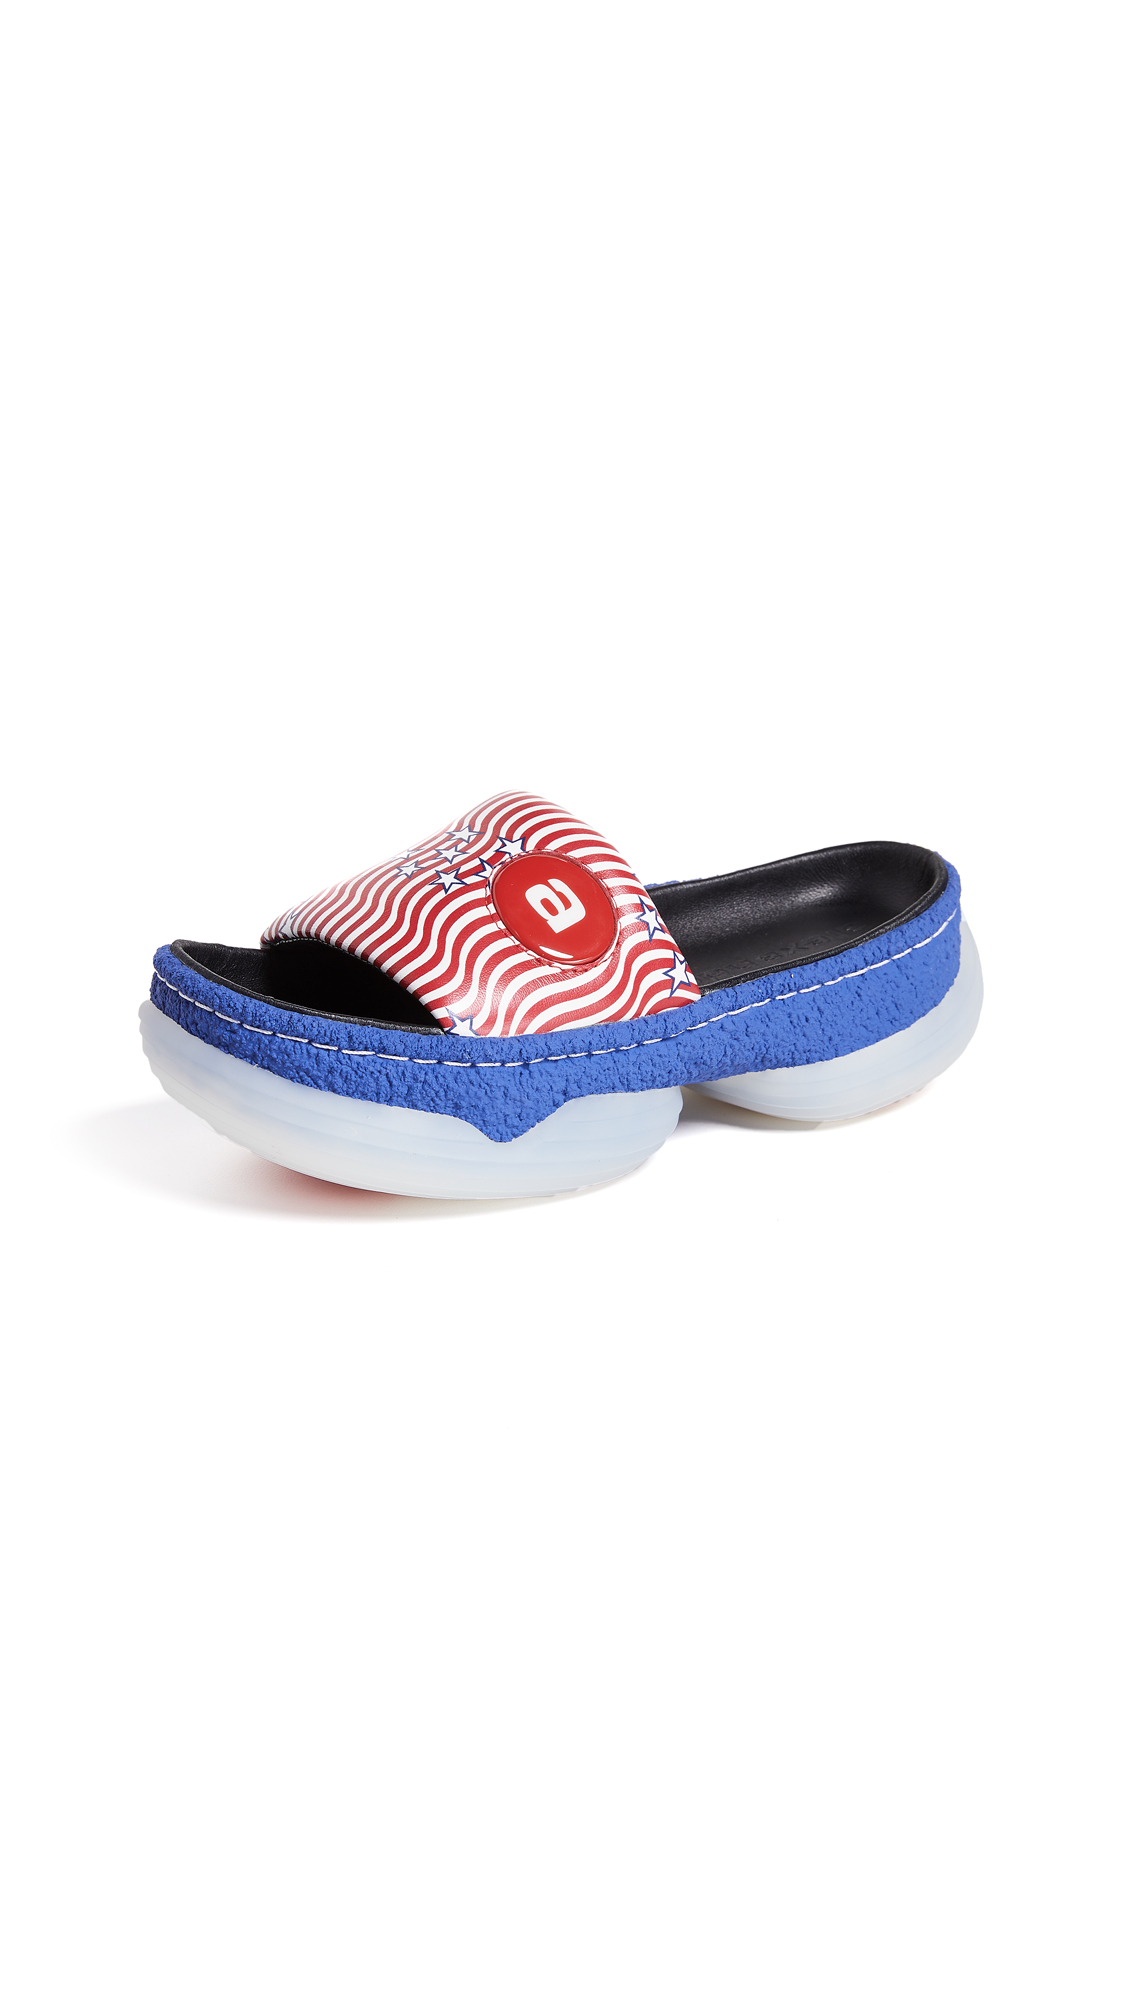 Alexander Wang A1 Platform Slides - Red White Blue